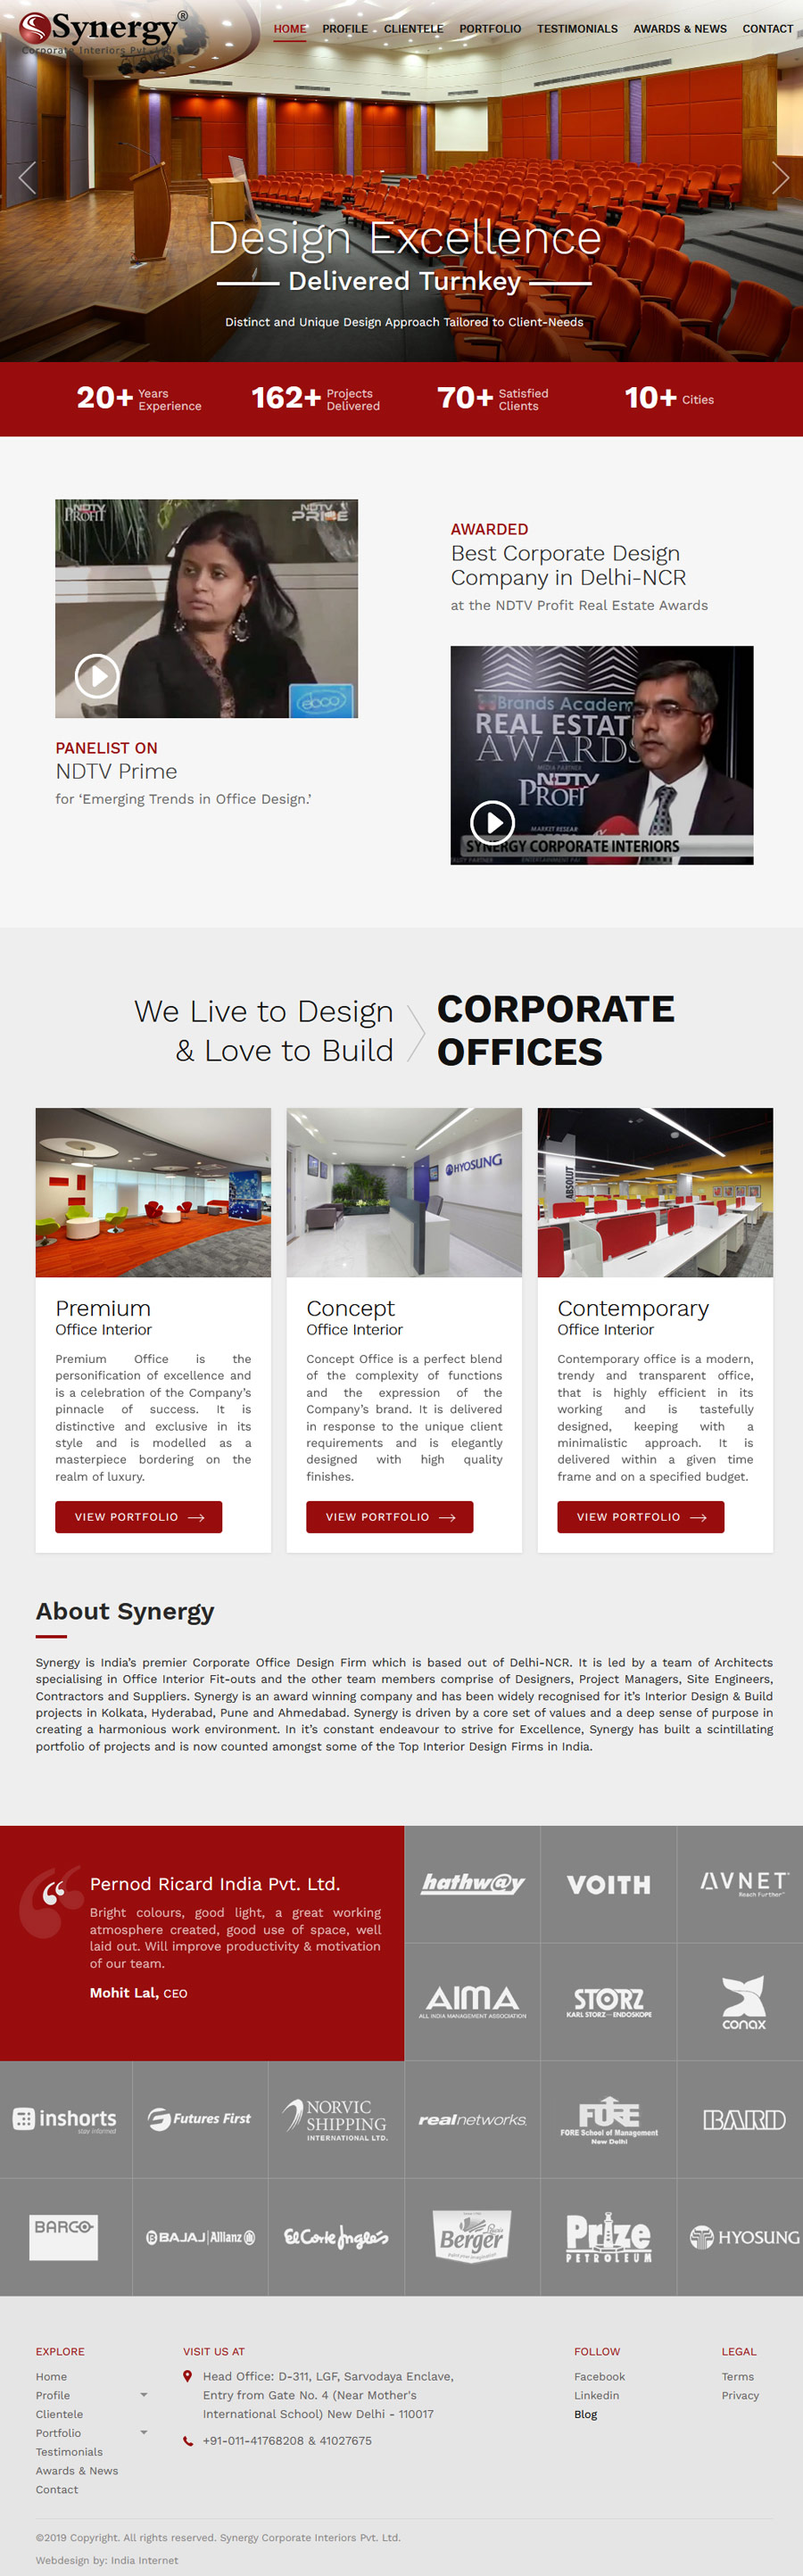 Synergy Corporate Interiors